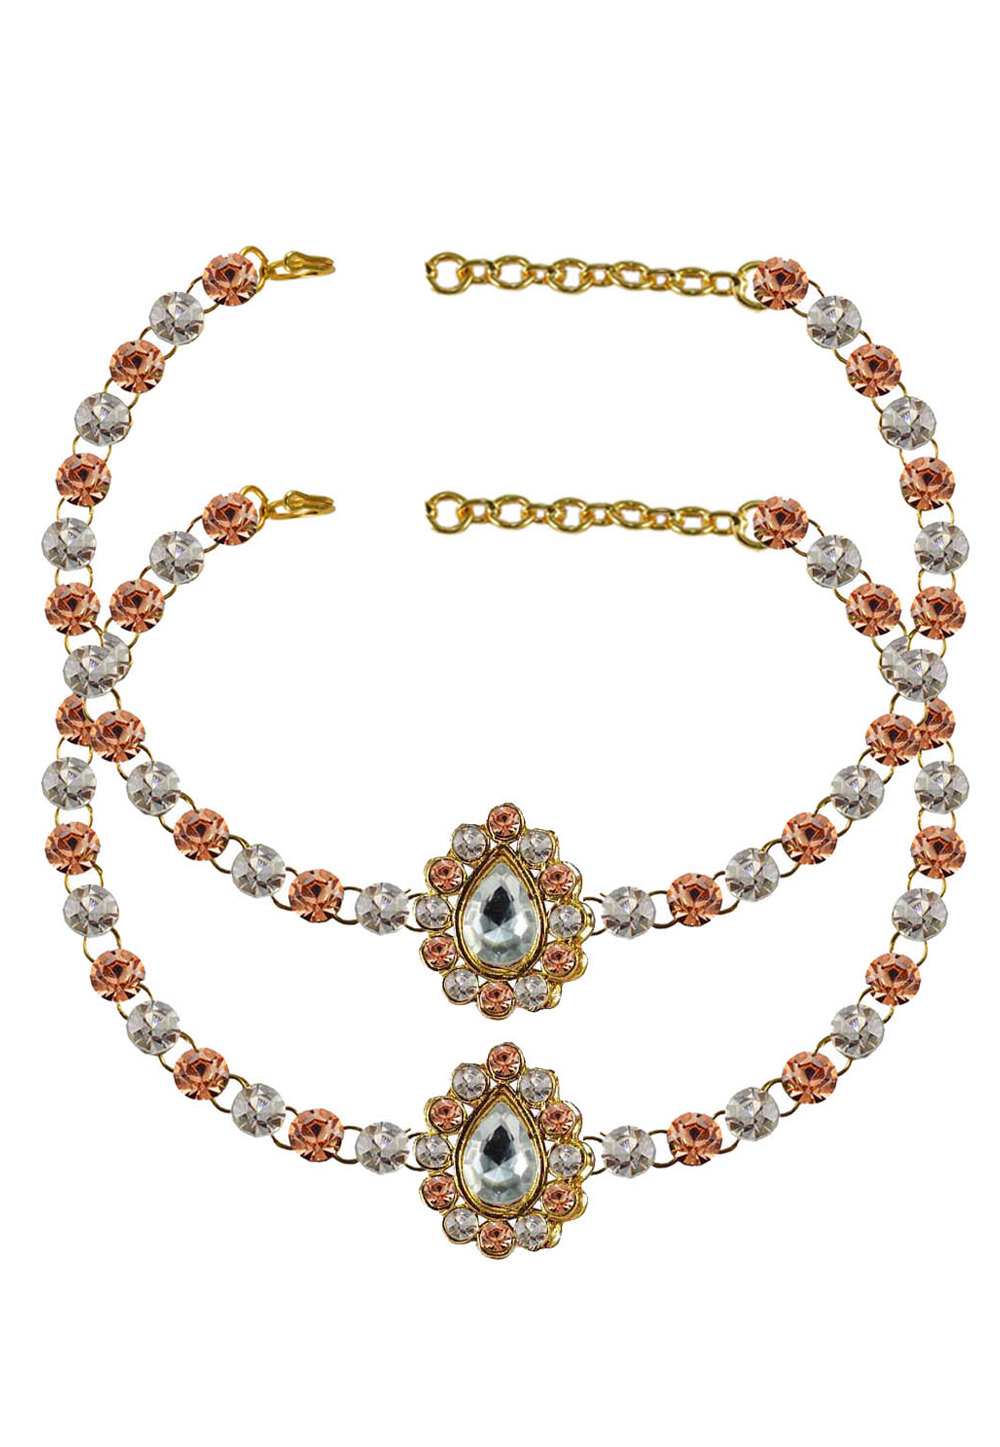 Peach Brass Gold Plated Anklets 171337